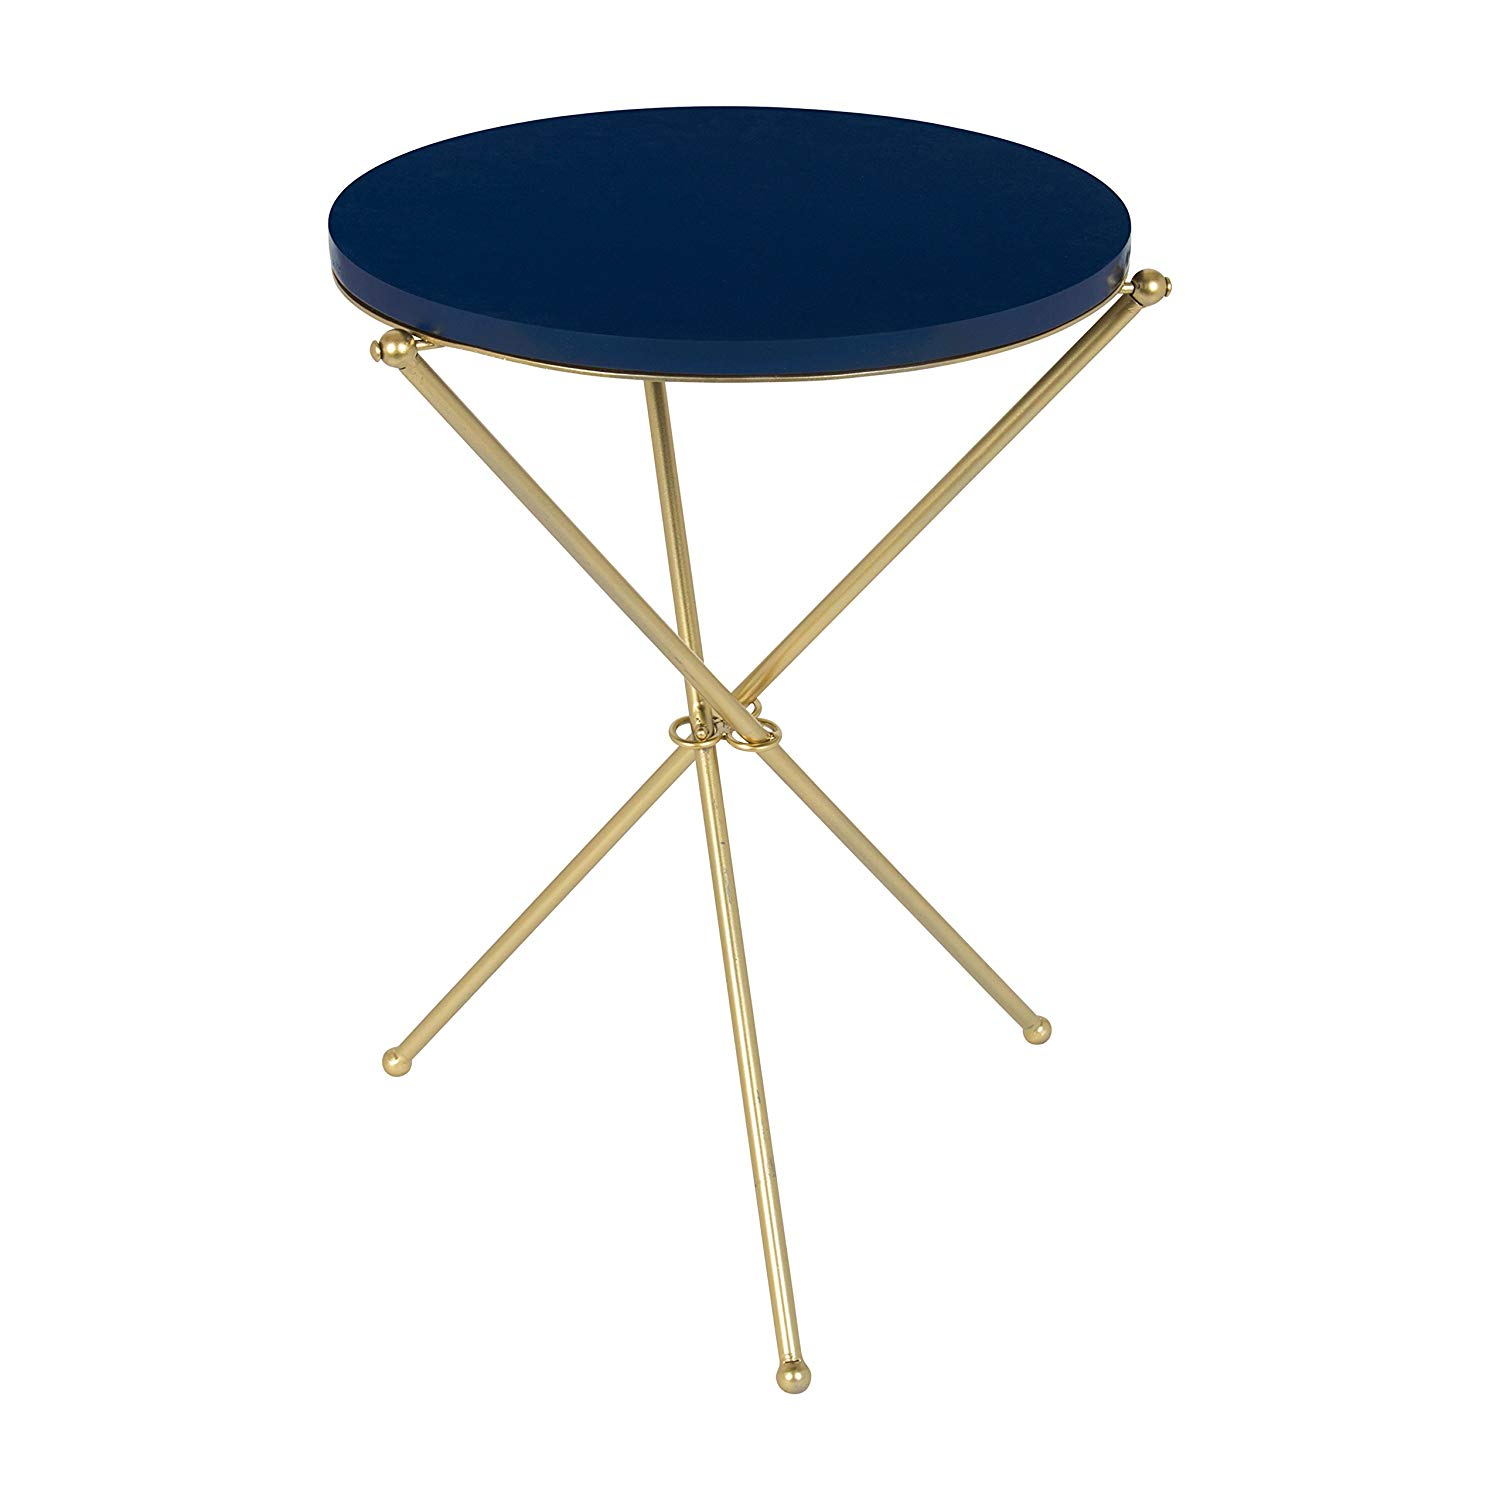 kate and laurel emellyn modern luxe folding side accent tall metal table with round painted wooden top tripod legs navy blue gold inch diameter inches bengal manor mango wood